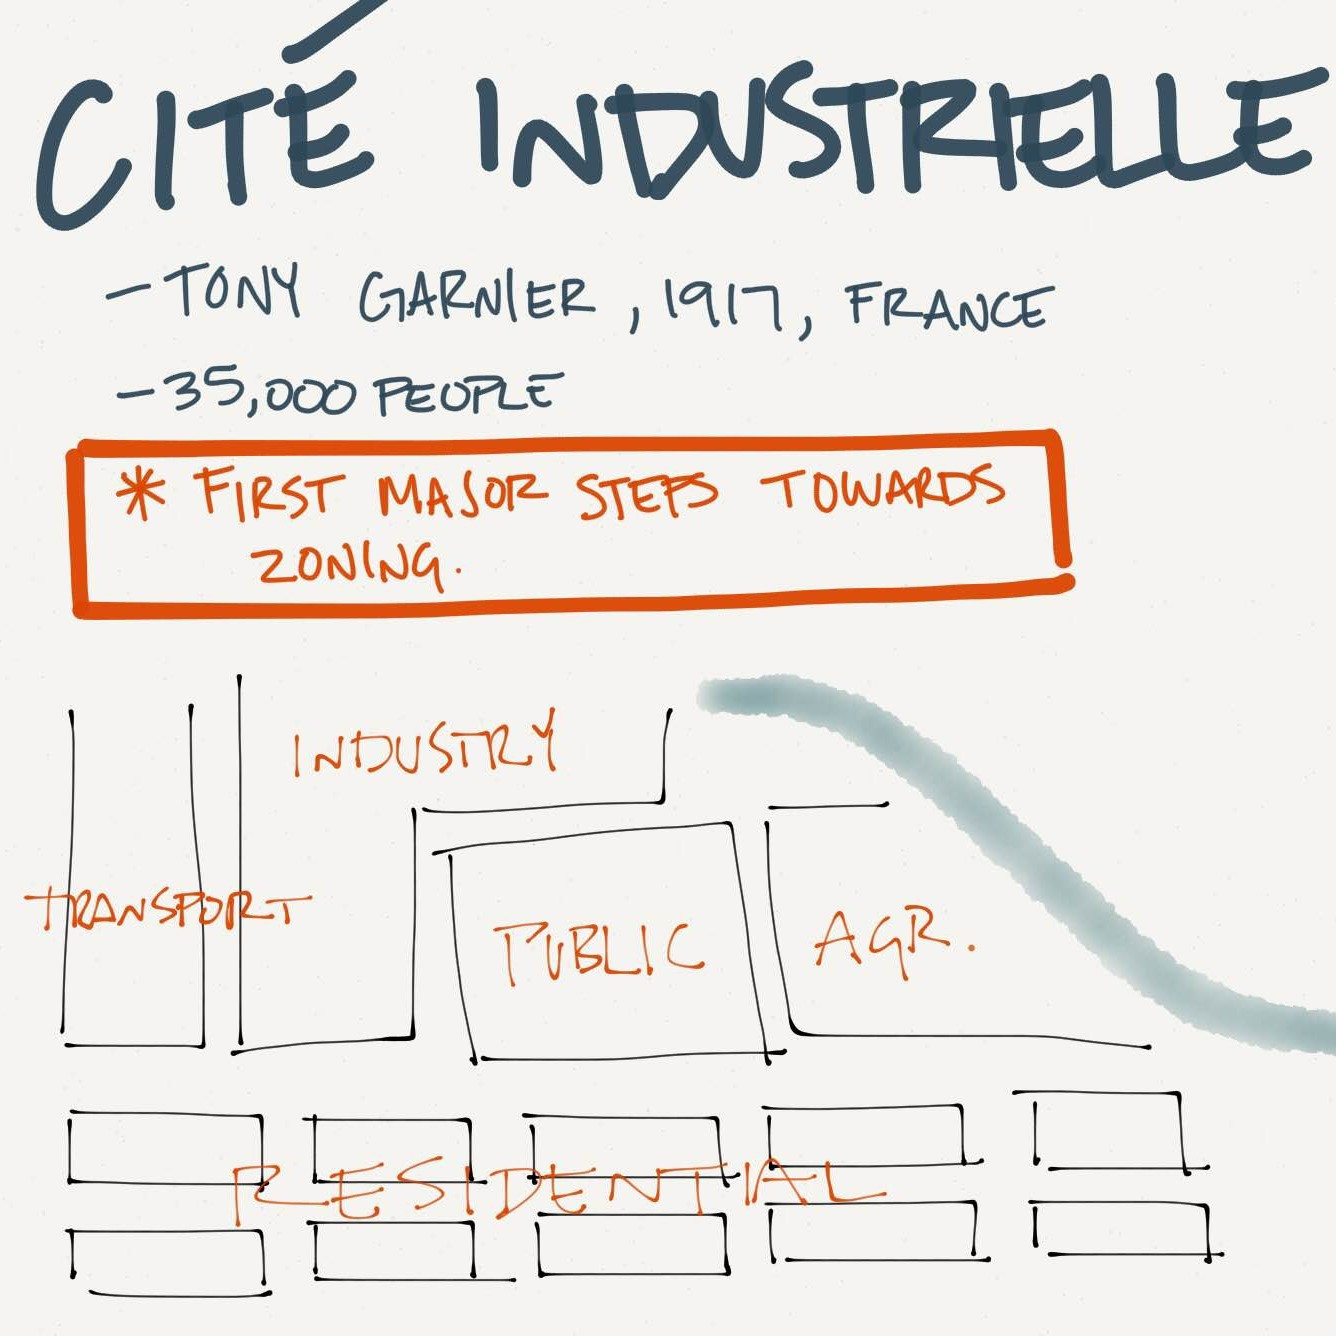 Cite industrielle l design llc for Architecture industrielle